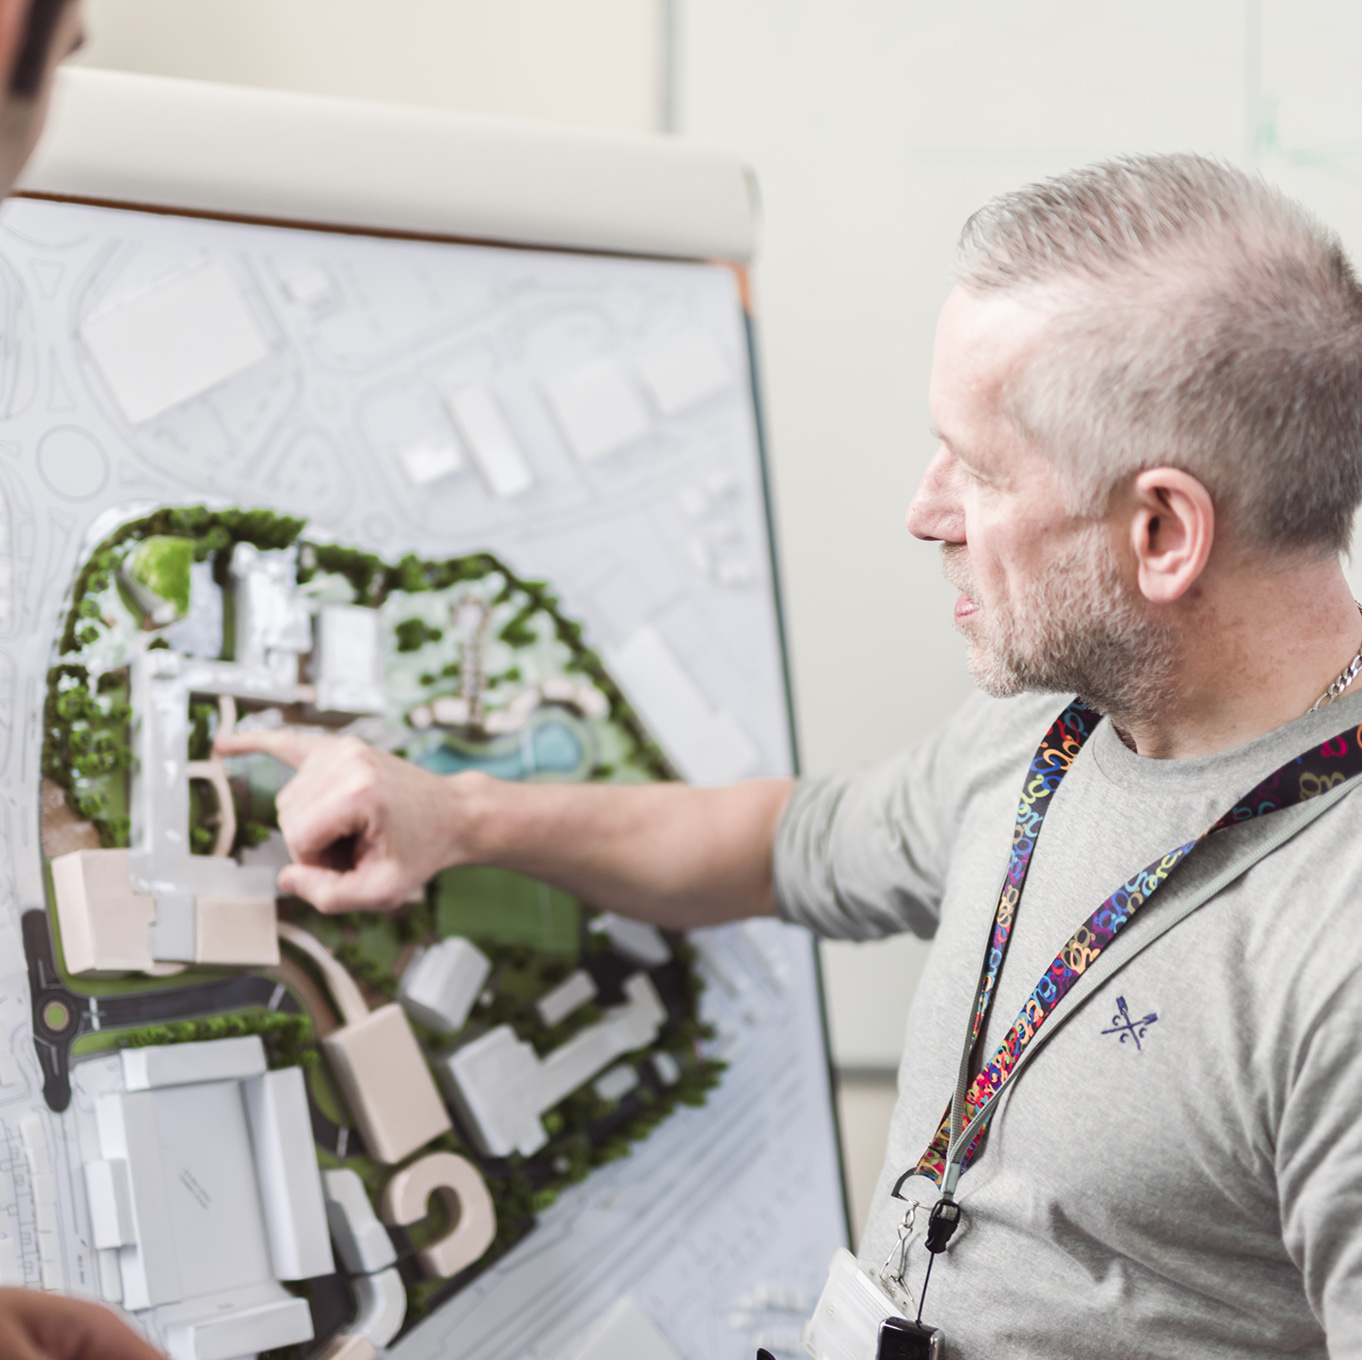 Lecturer Gareth Carr point out key features of a 3D building plan to a student